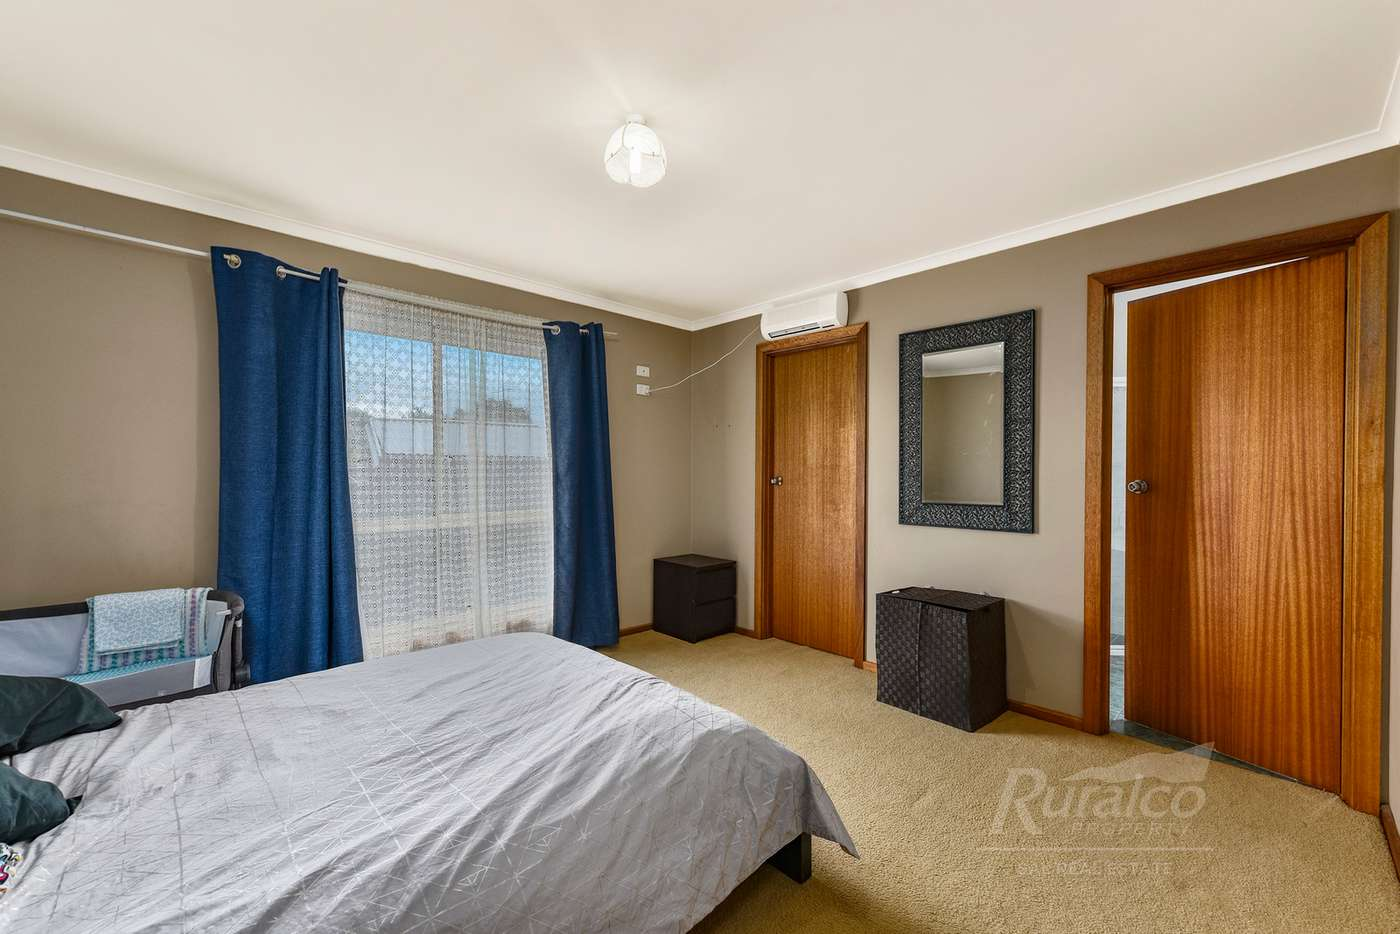 Seventh view of Homely house listing, 11 MacArthur Street, Mount Gambier SA 5290